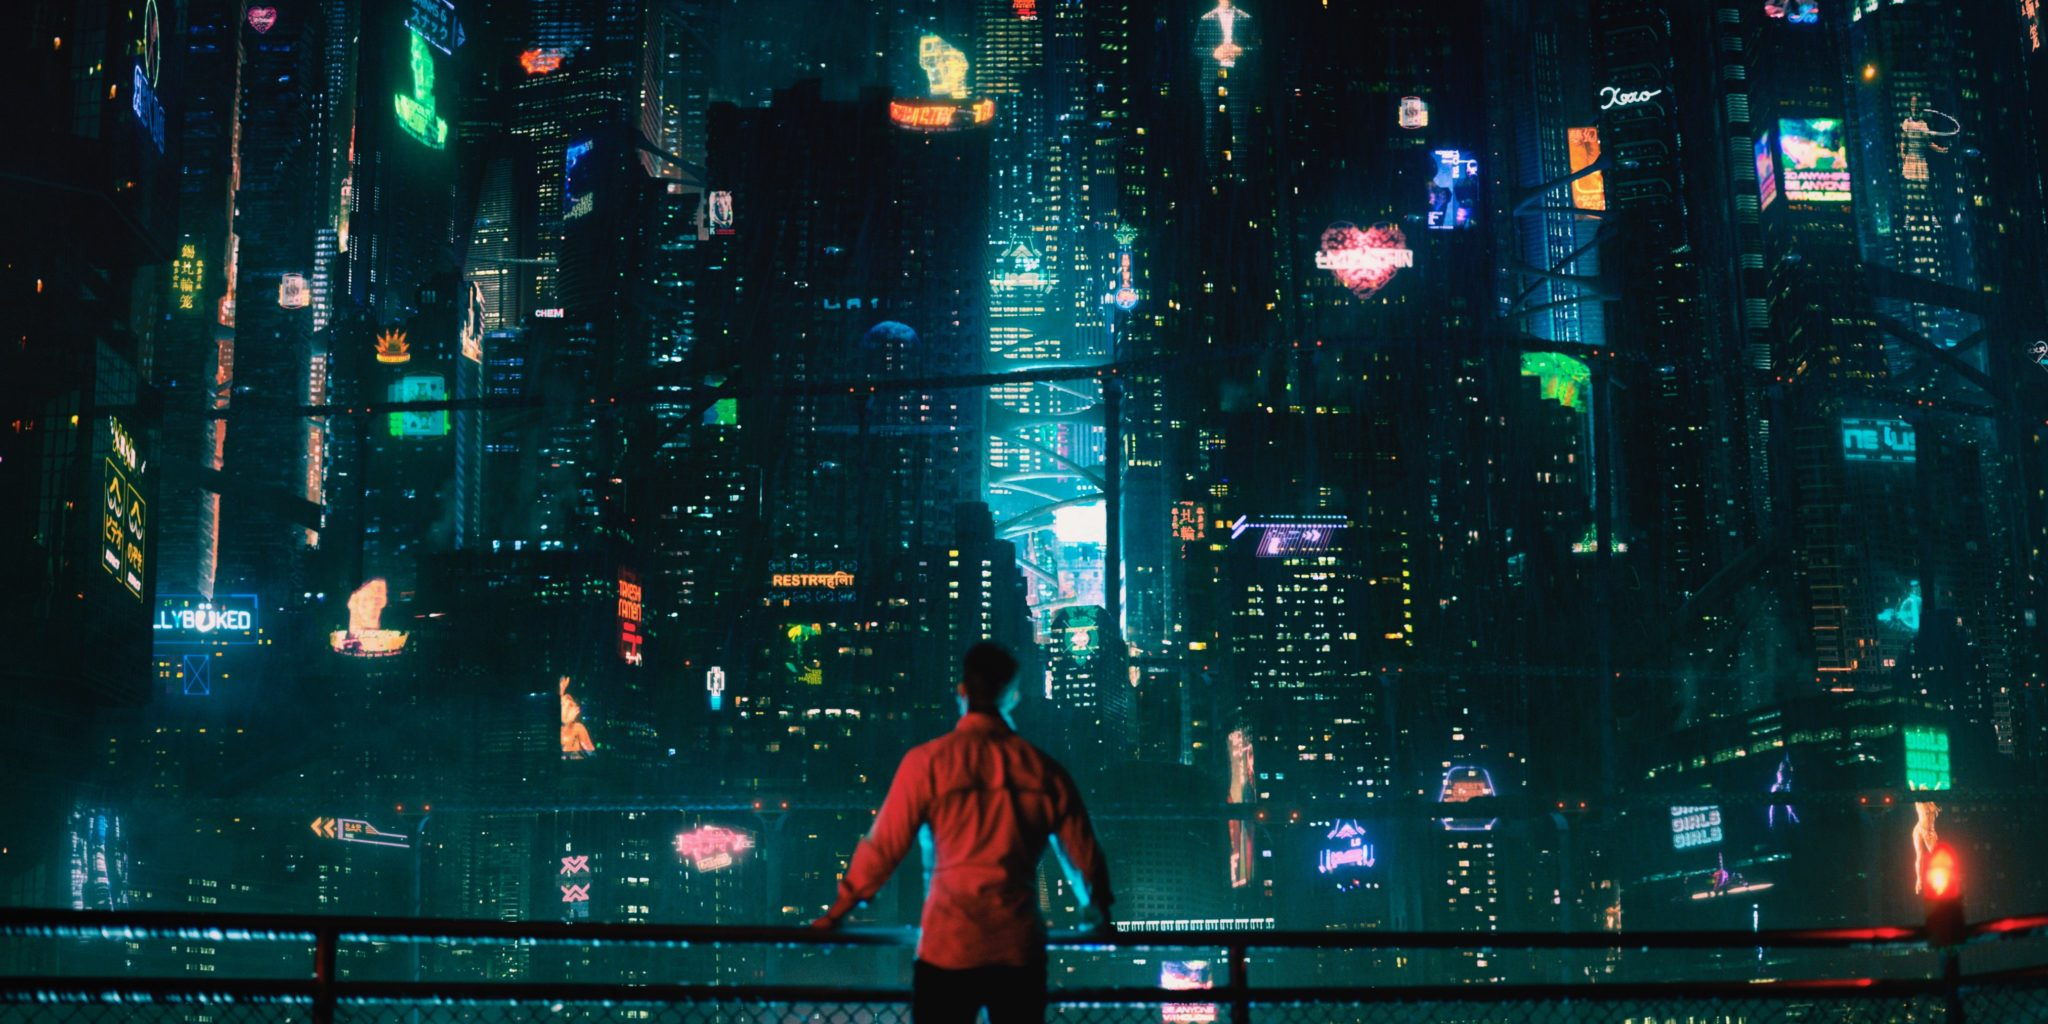 Le teaser de la nouvelle série Netflix — Altered Carbon